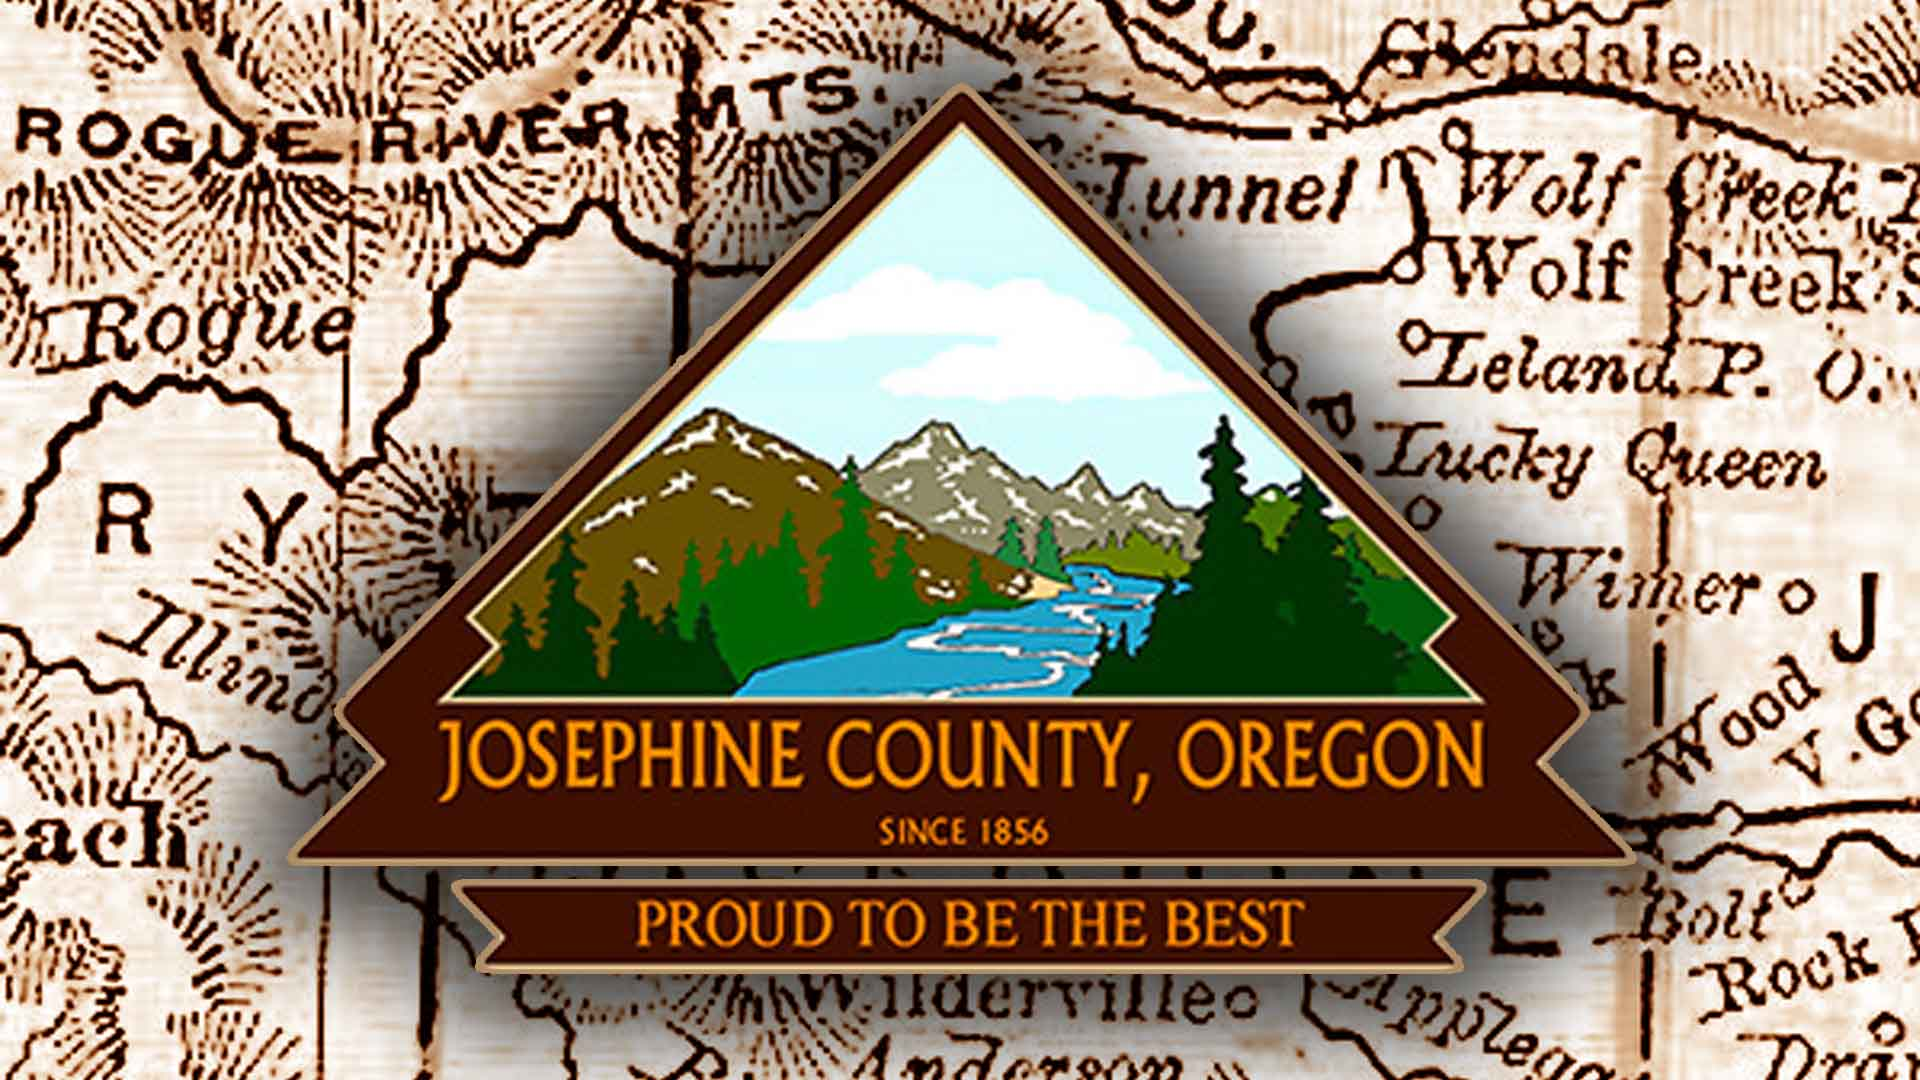 josephine county County population in 2016: 85,904 (55% urban, 45% rural) it was 75,726 in 2000 county owner-occupied with a mortgage or a loan houses and condos in 2010: 13,944 county owner-occupied free and clear houses and condos in 2010: 9,168 county owner-occupied houses and condos in 2000: 21,713.